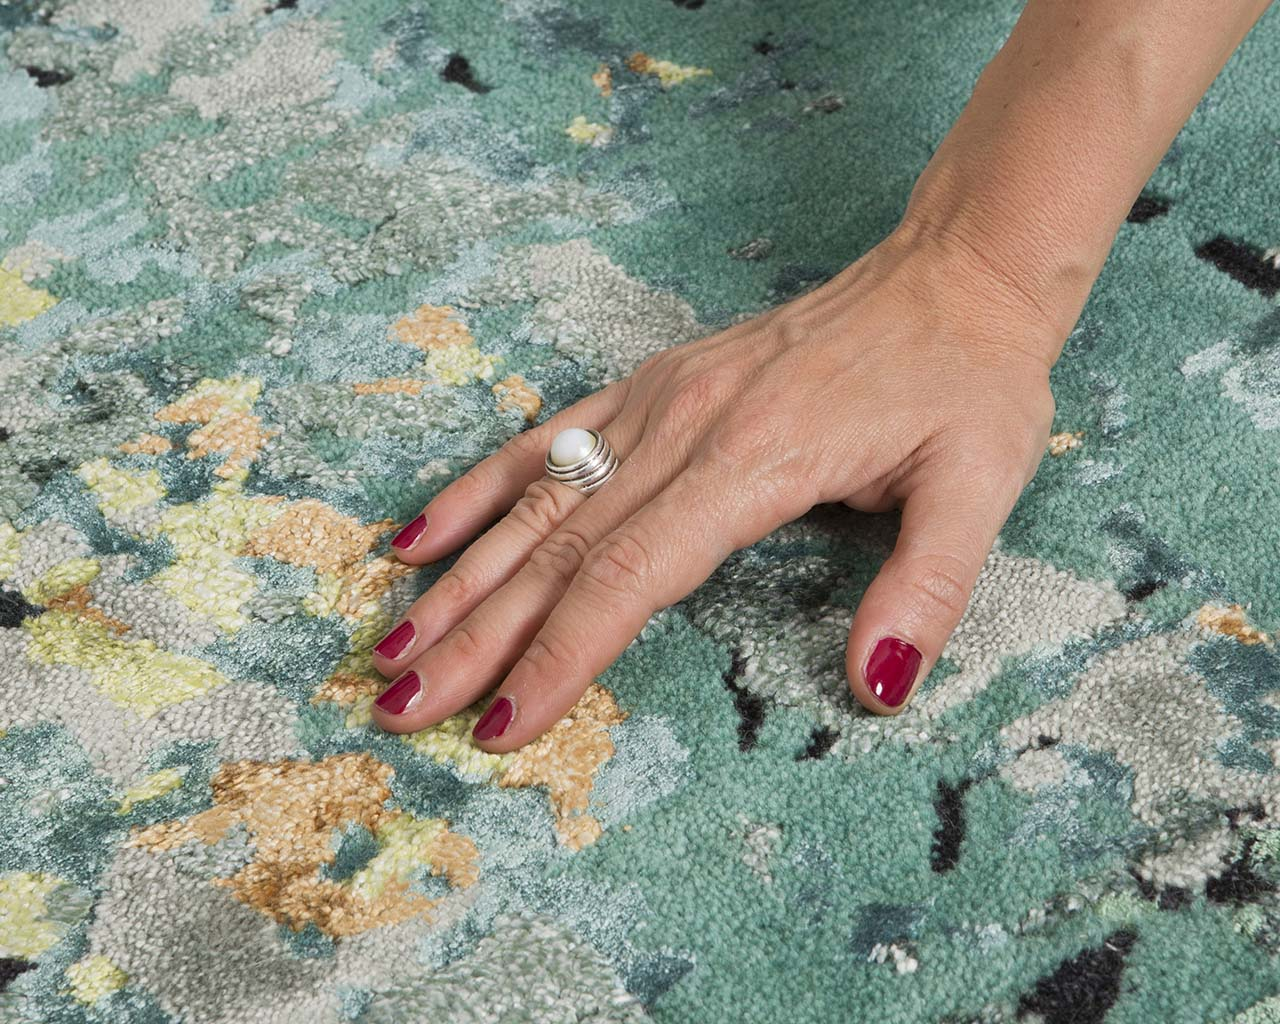 olive drab tufted hand with nail polish small area rugs